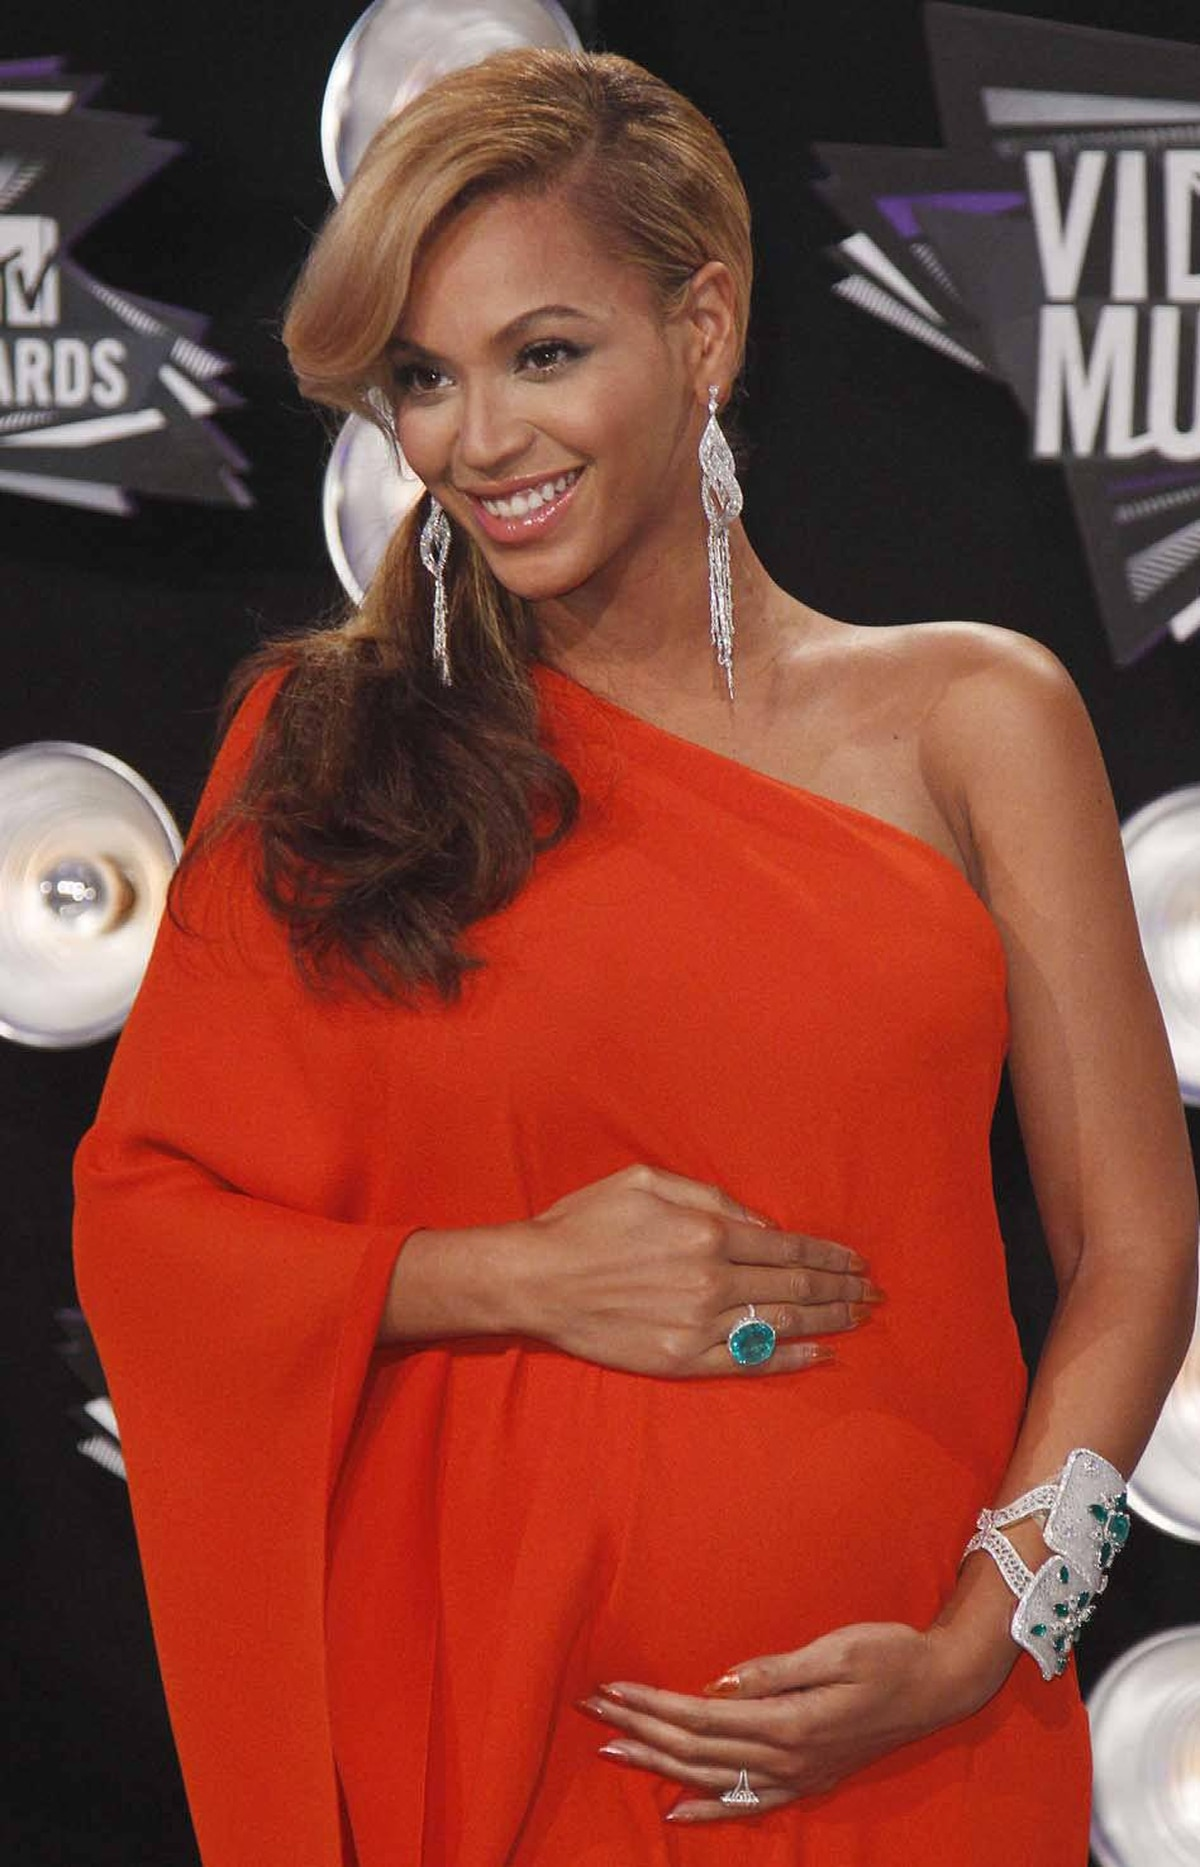 And then? On Aug. 28, 2011, Beyonce used the red carpet at the MTV Music Awards to announce her pregnancy (with the rapper Jay-Z) . She gave birth to a daughter in January.